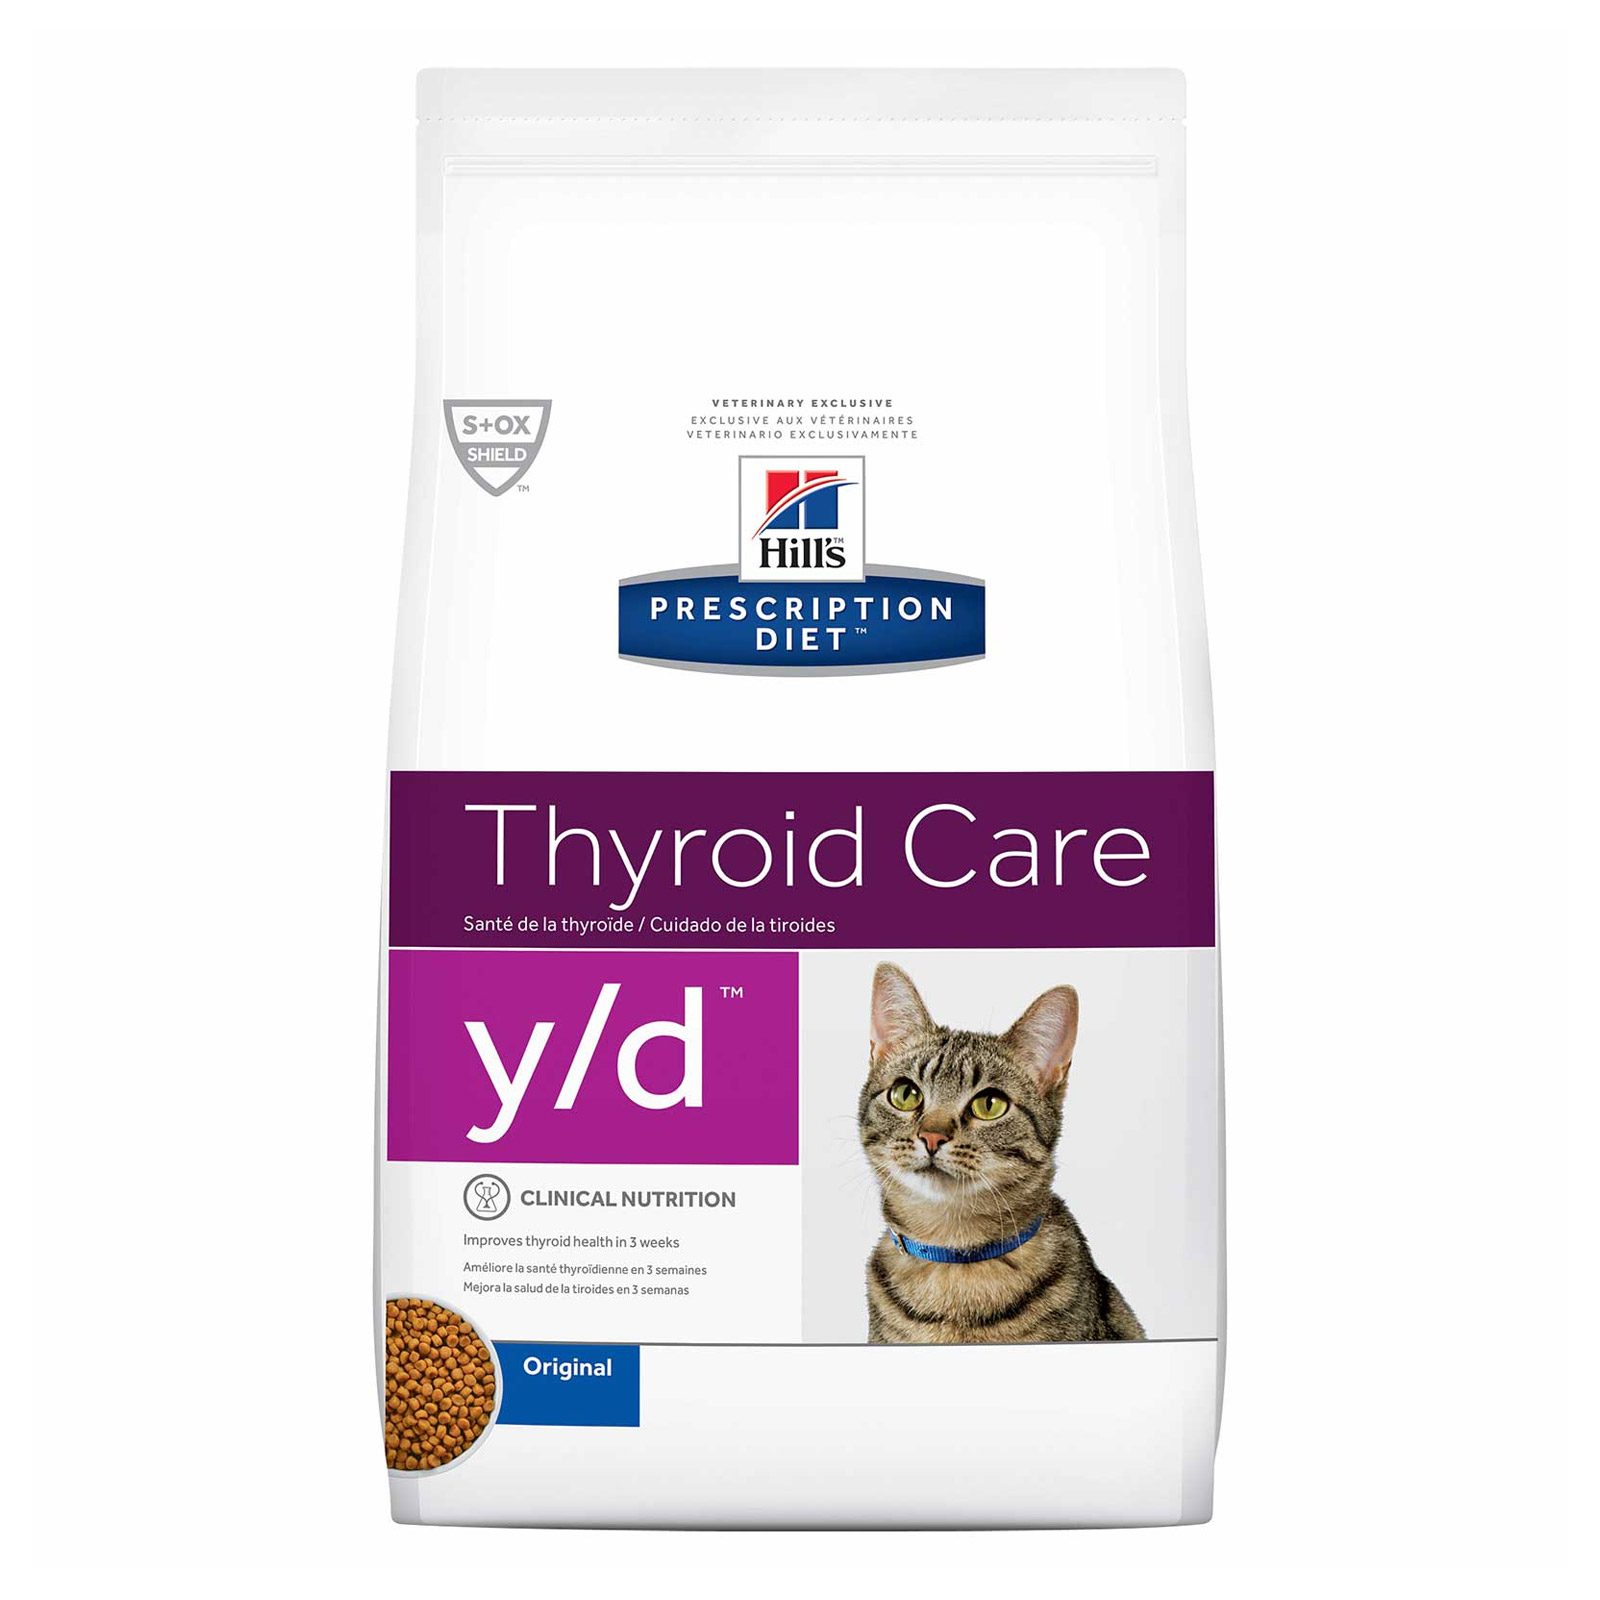 Hill's Prescription Diet Feline y/d Thyroid Care Dry